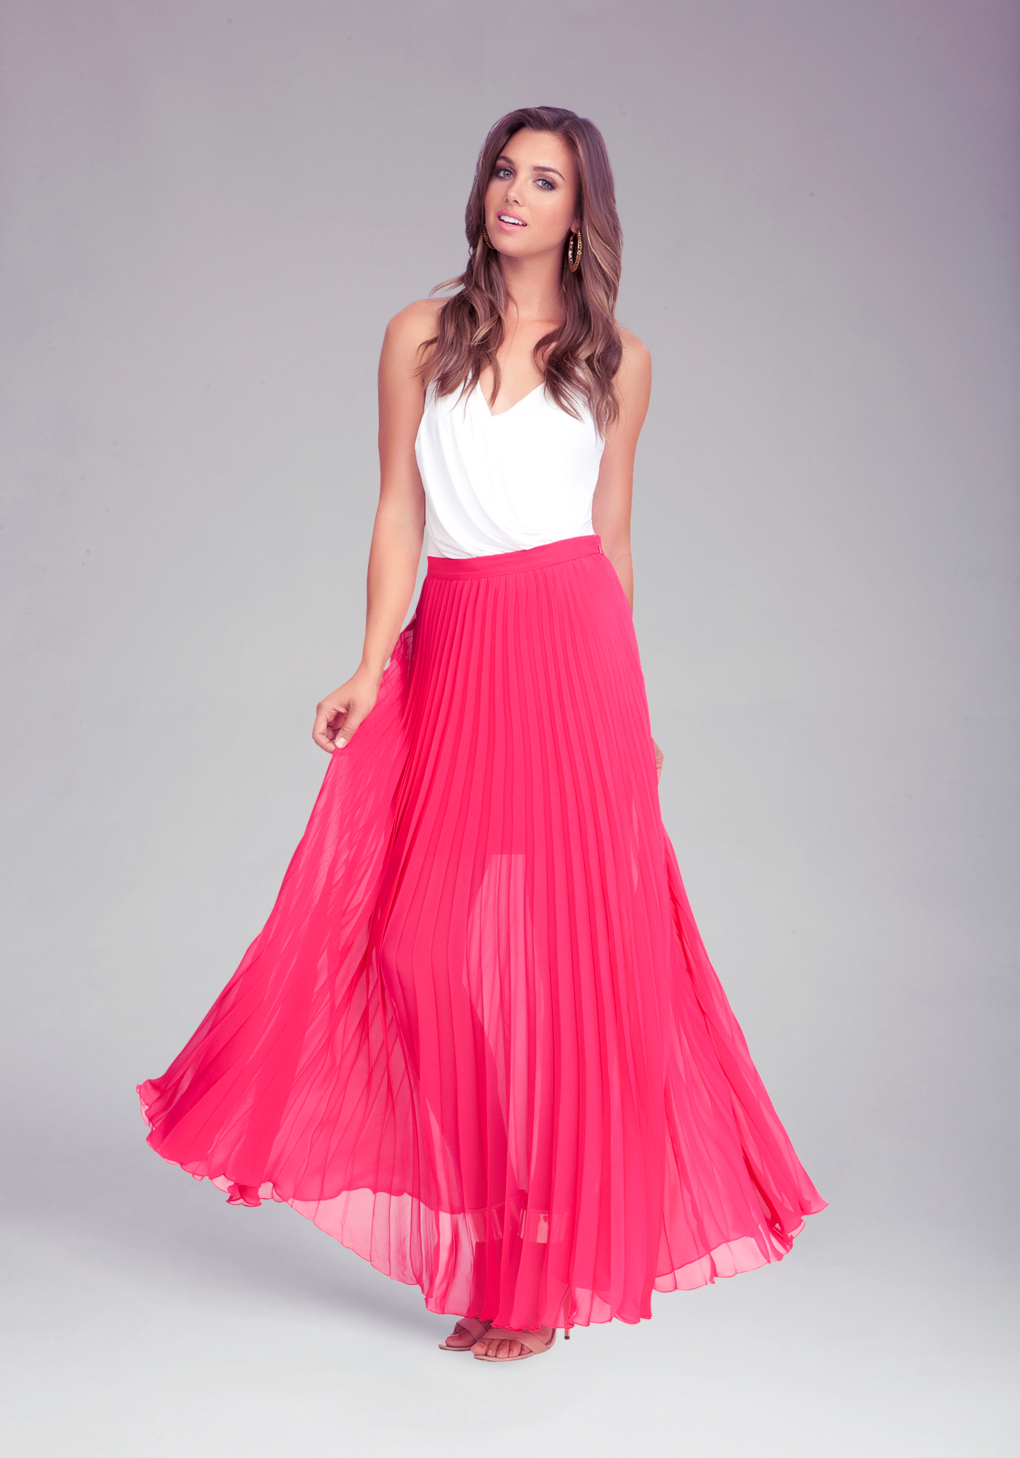 Bebe Pleated Long Skirt in Pink | Lyst